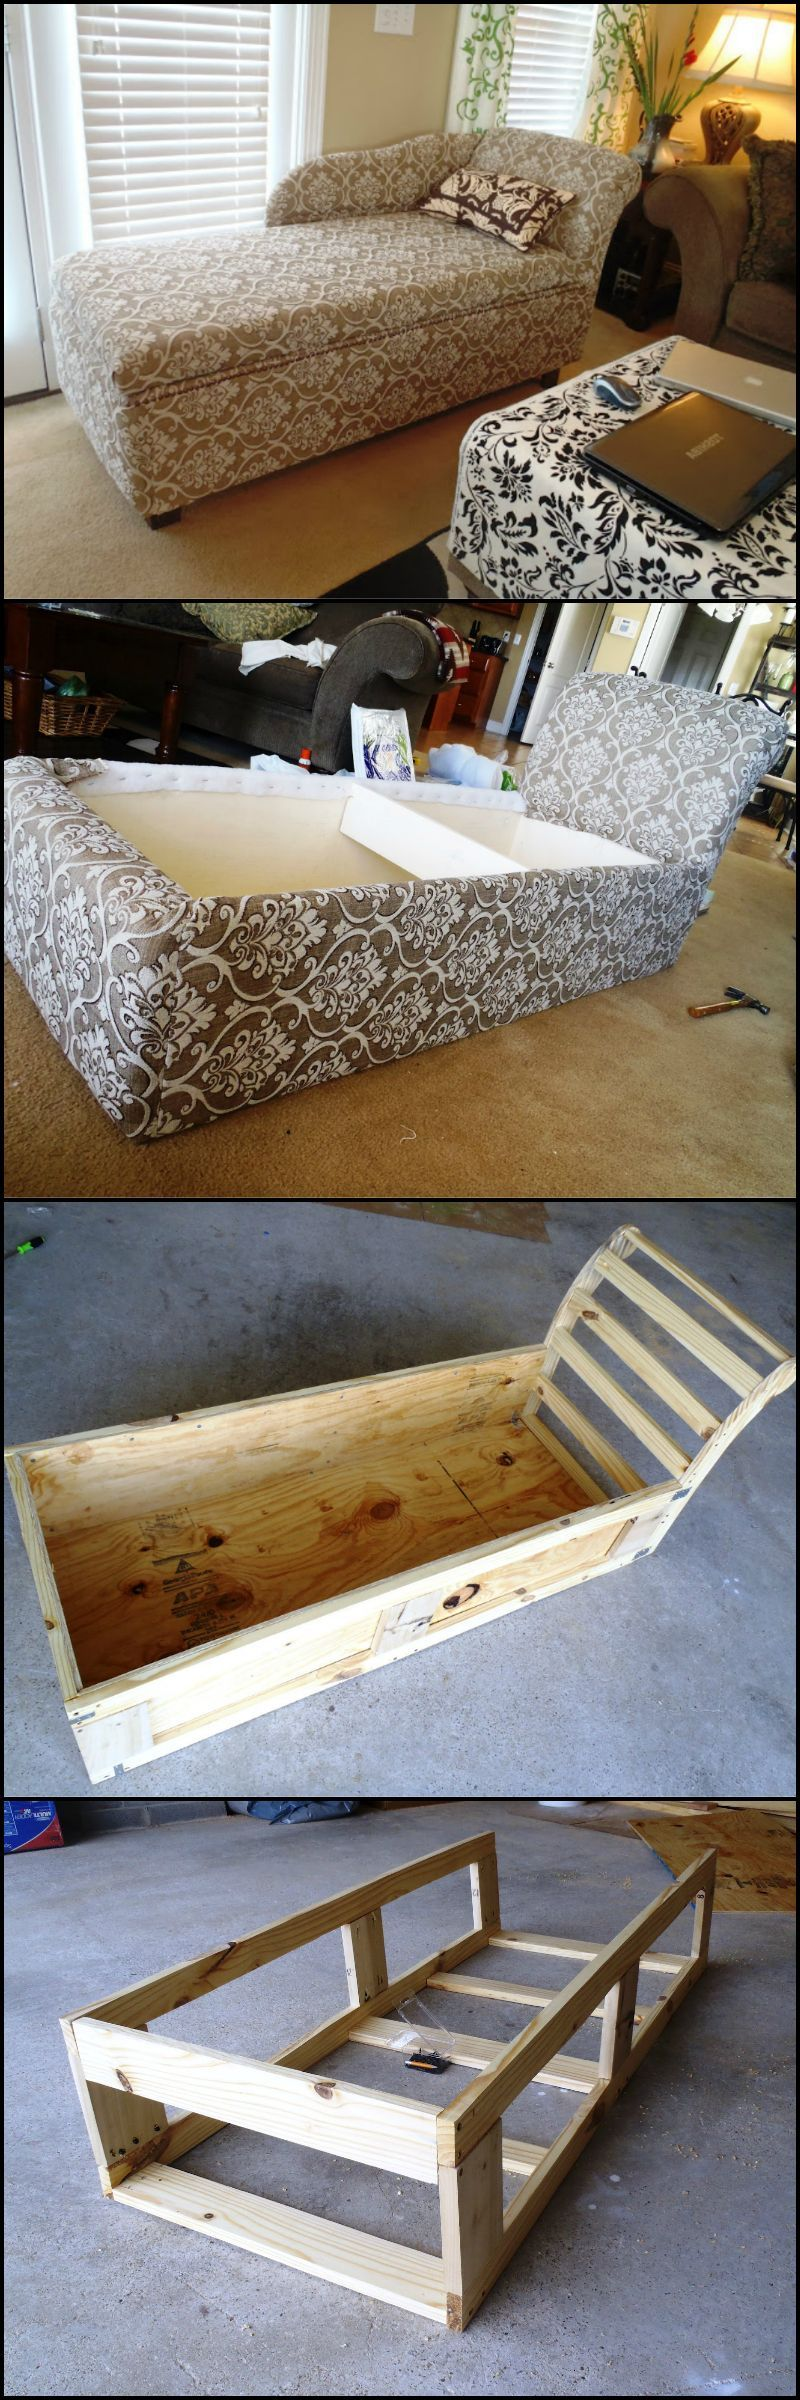 How to build a chaise lounge with extra storage space http for Build chaise lounge